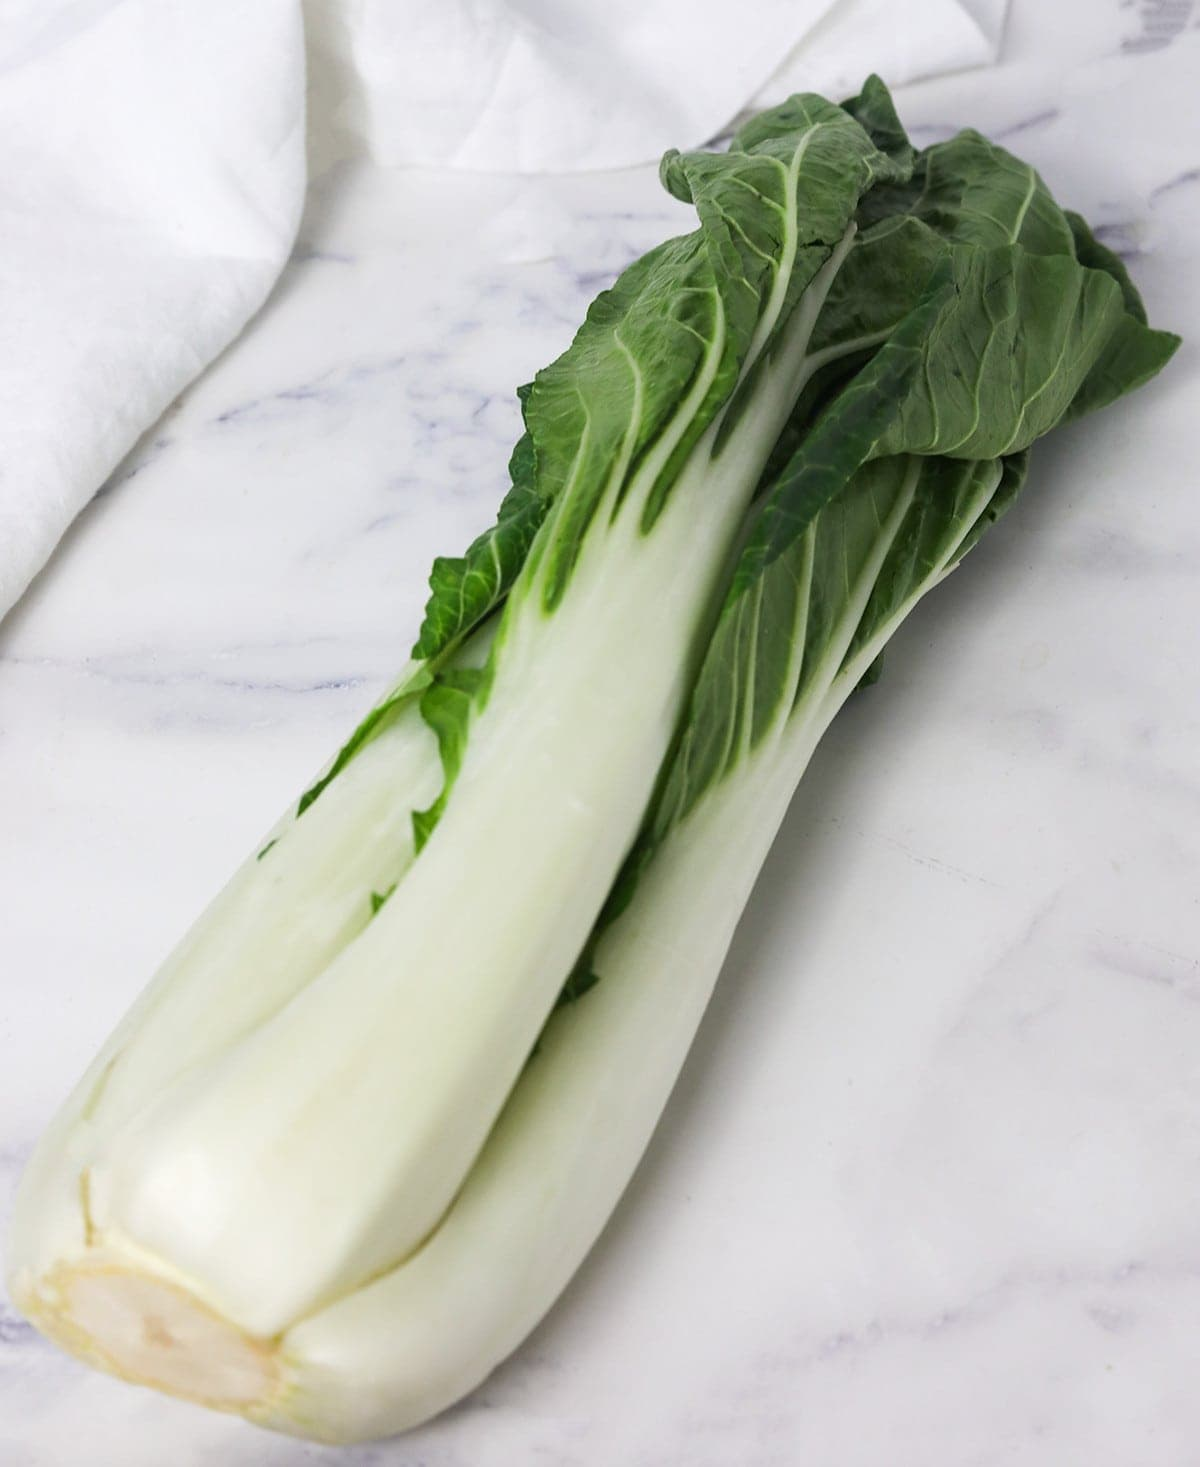 bok choy on a white marble with a white napkin